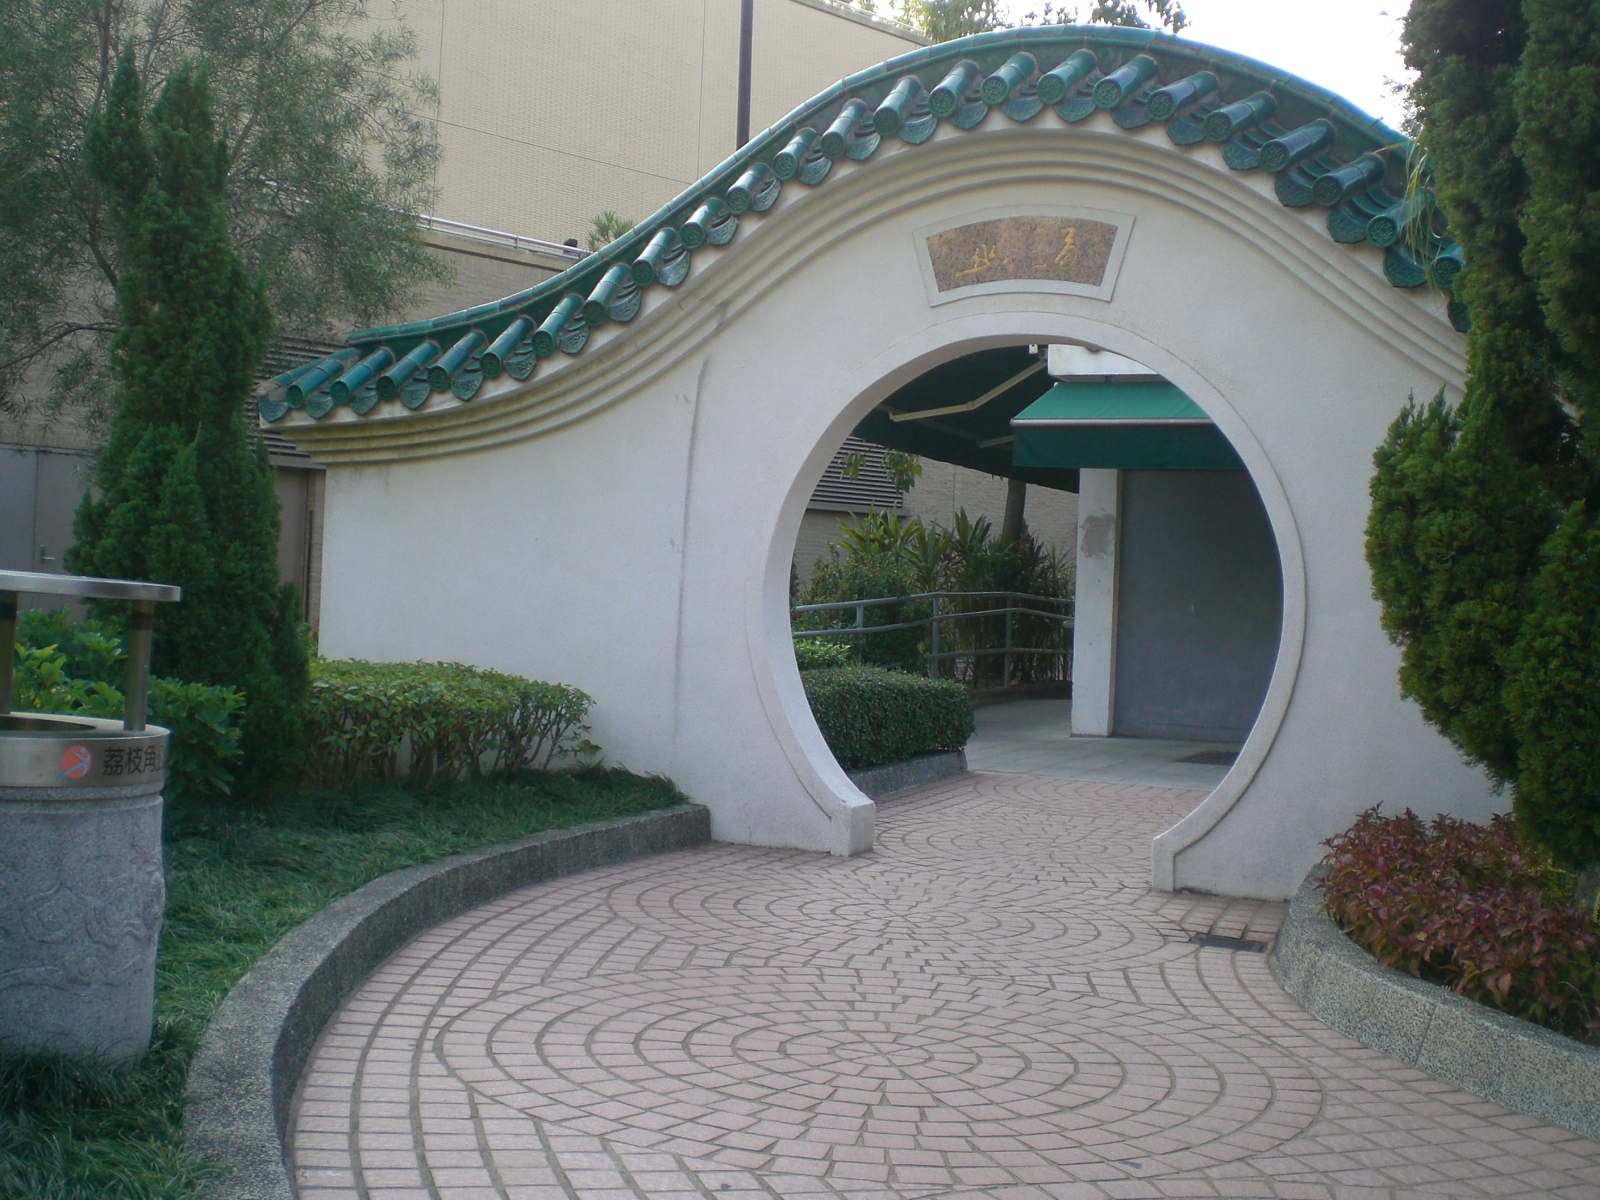 hk lai chi kok park chinese arch this would be a really cool